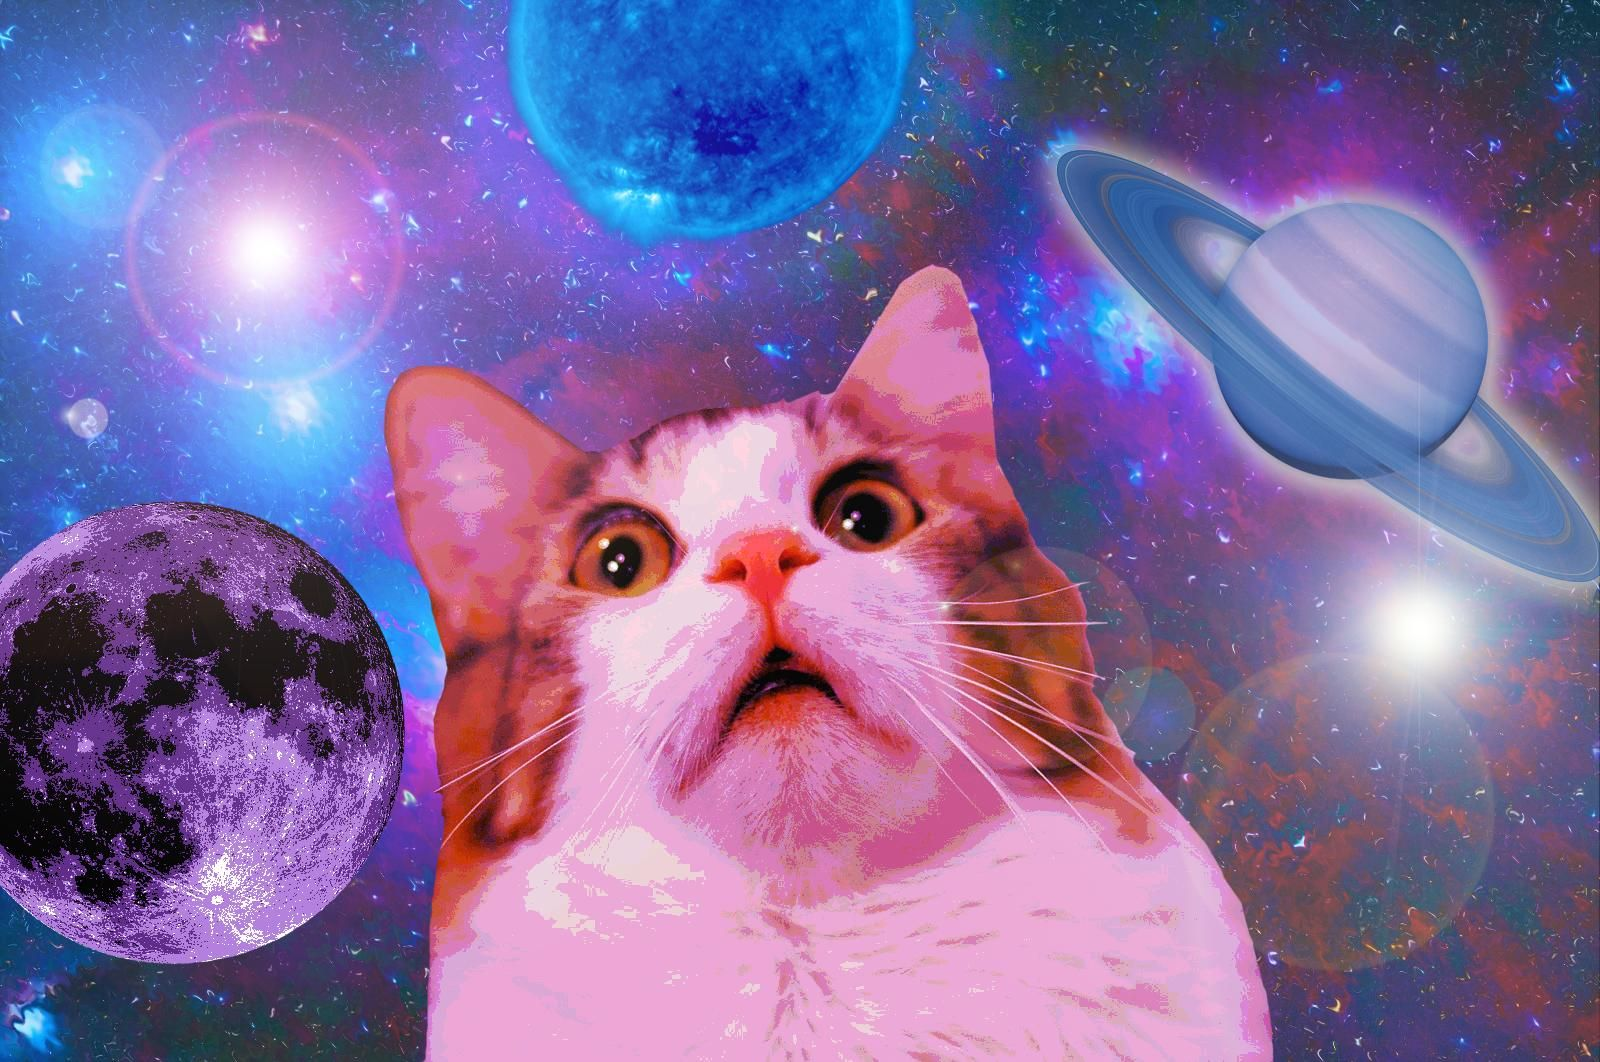 Space Cat Wallpapers For Iphone For Desktop Wallpaper 1600 X 1062